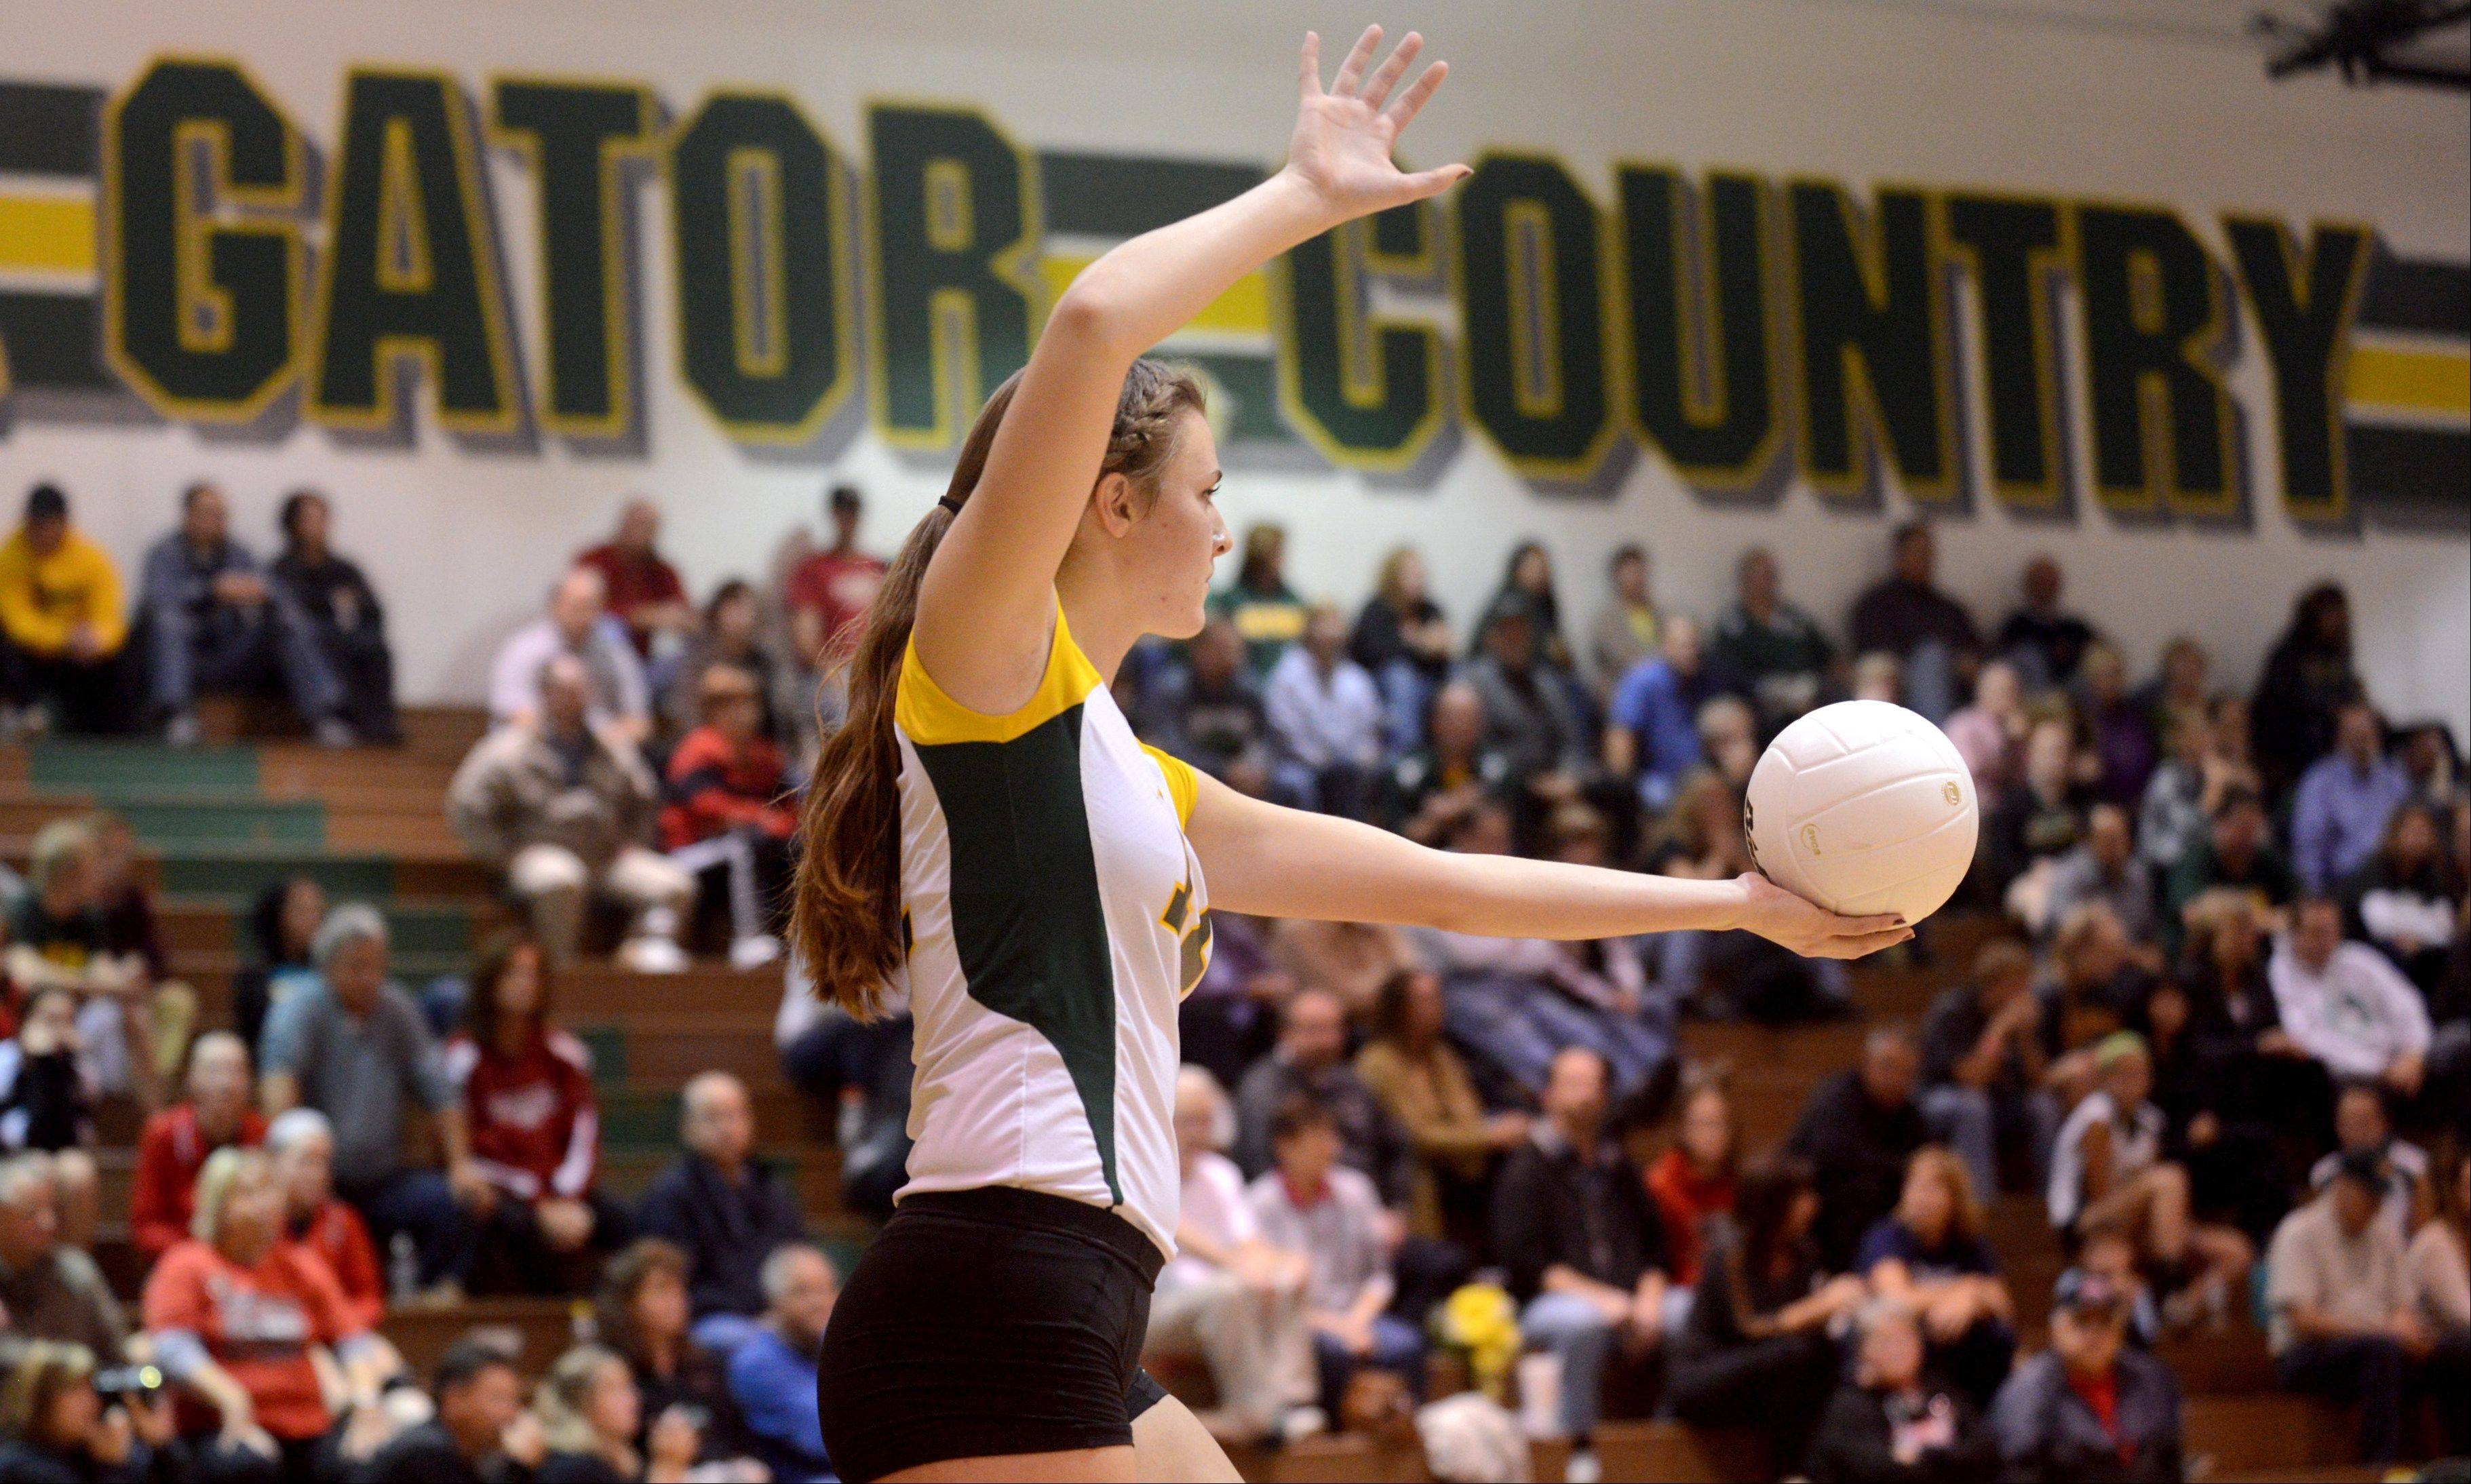 Crystal Lake South's Nicole Slimko prepares to serve the ball against Huntley during varsity volleyball at Crystal Lake on Thursday night.